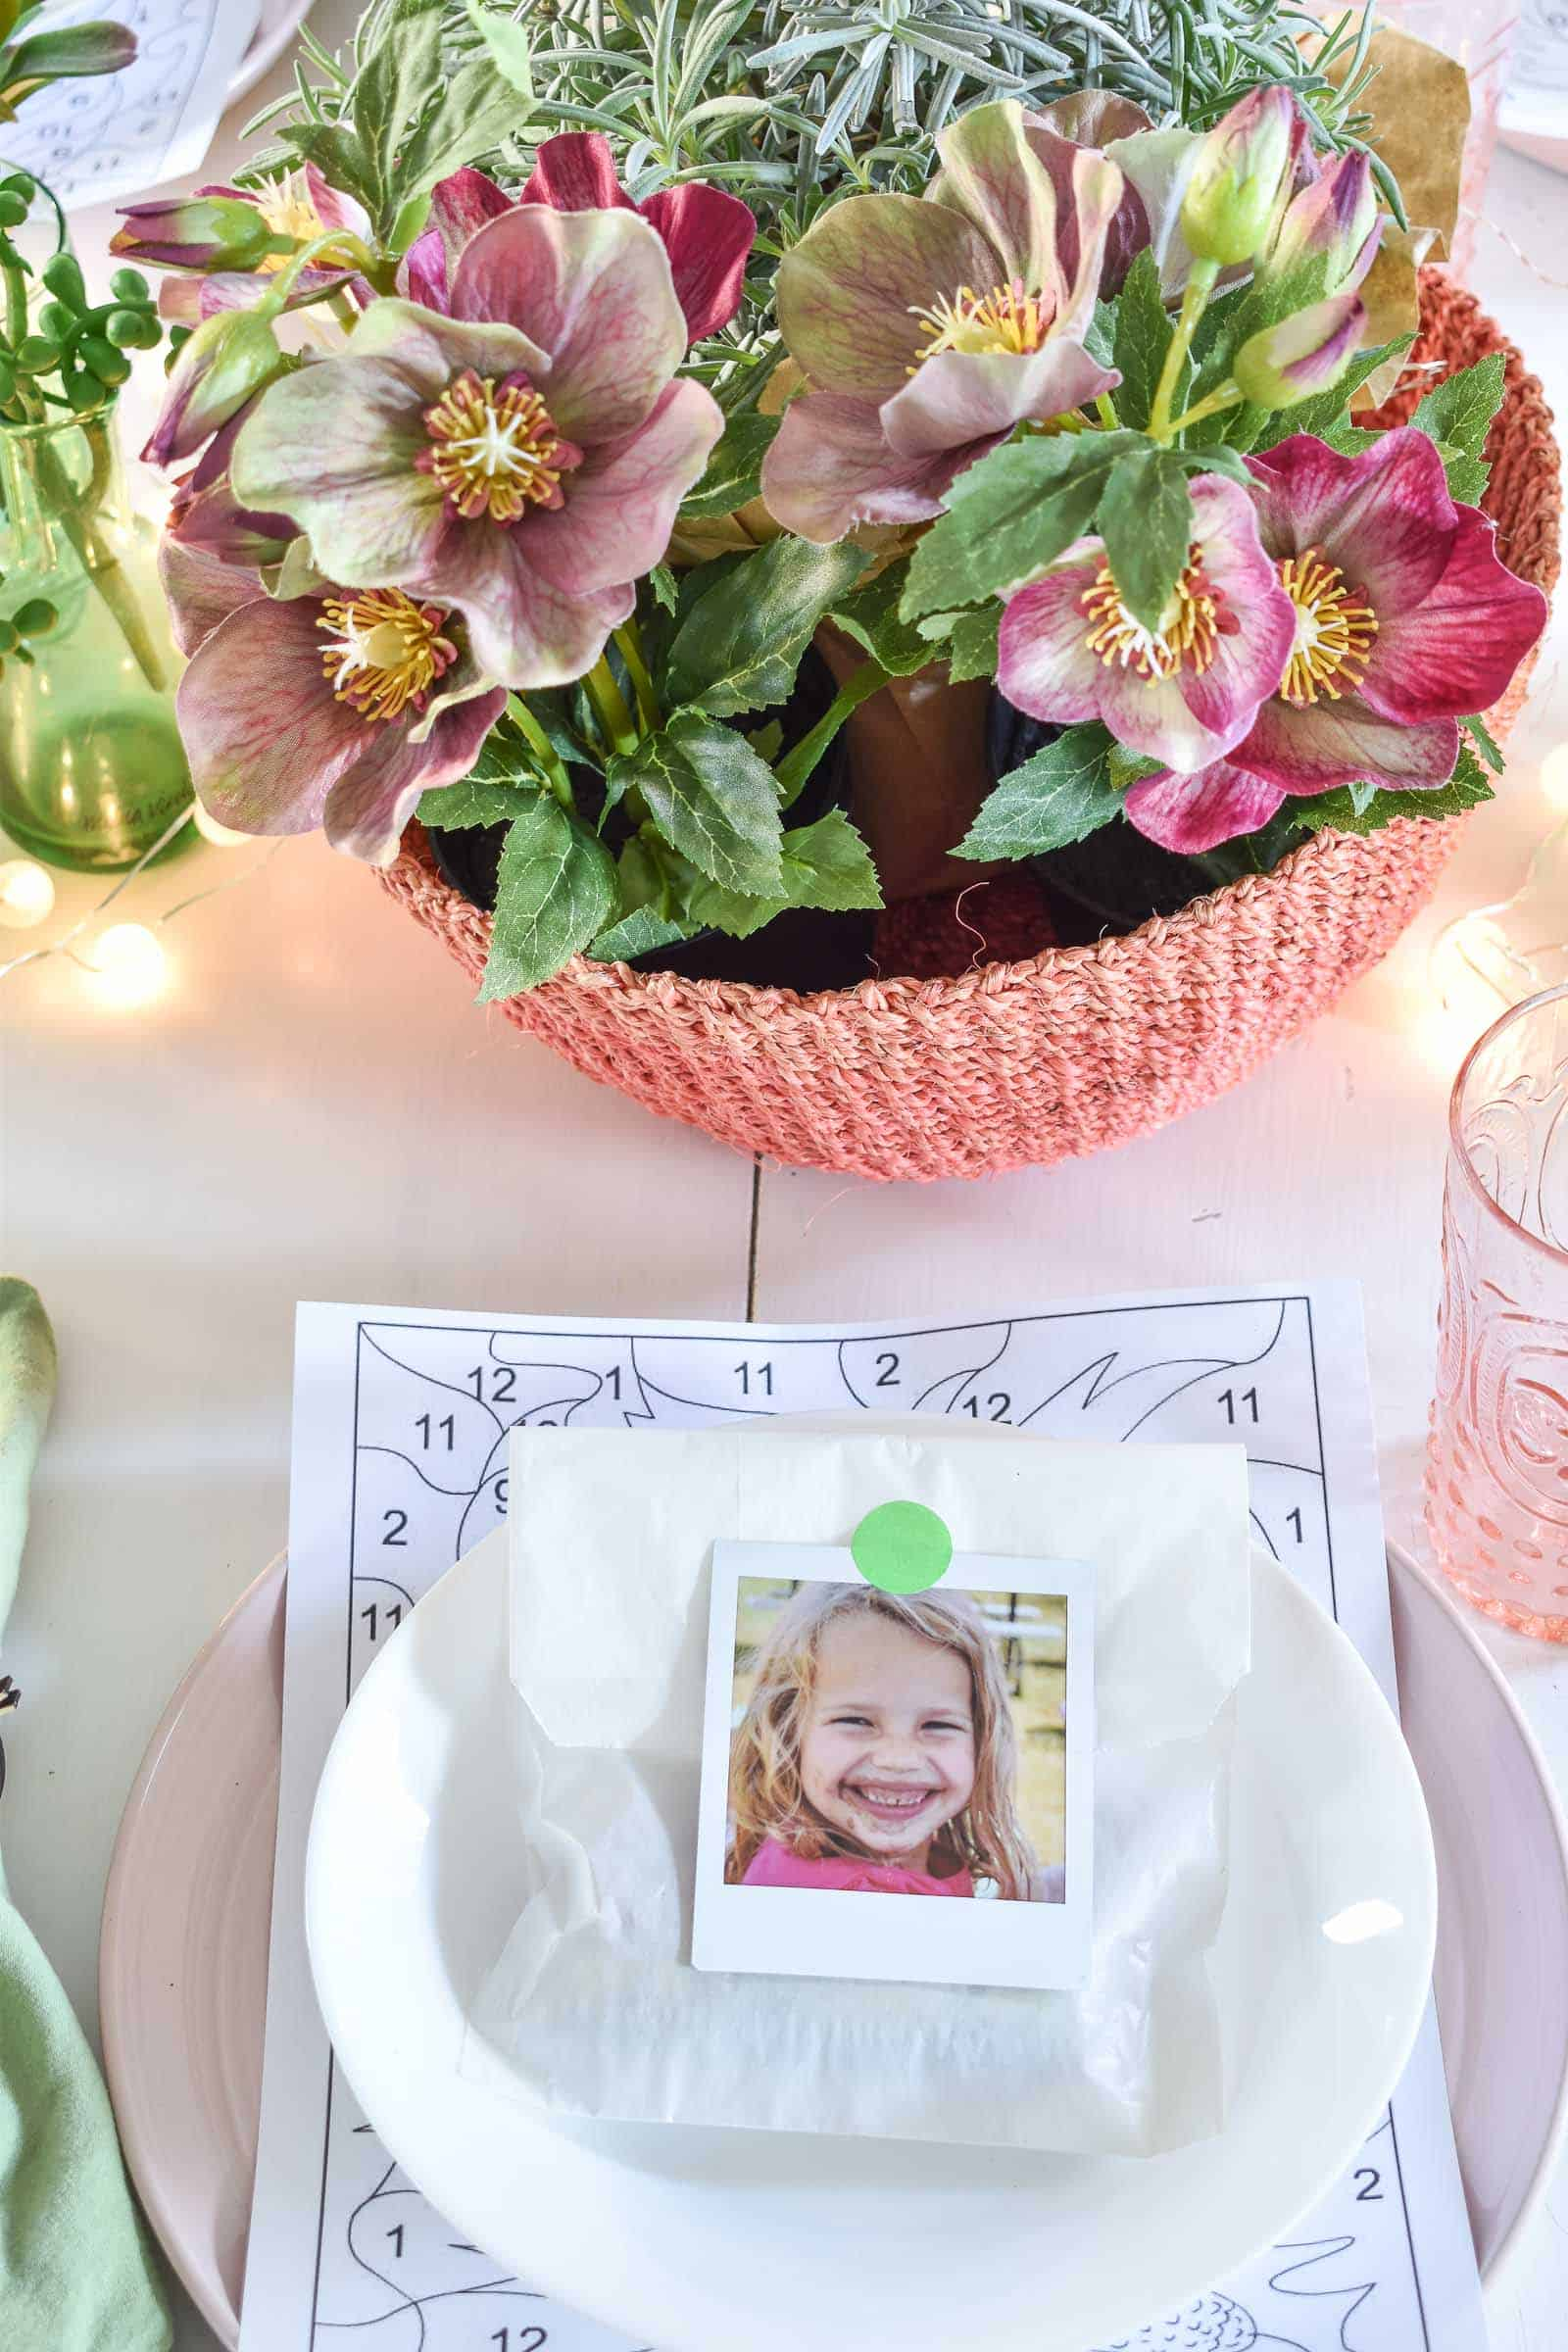 instax picture as place card